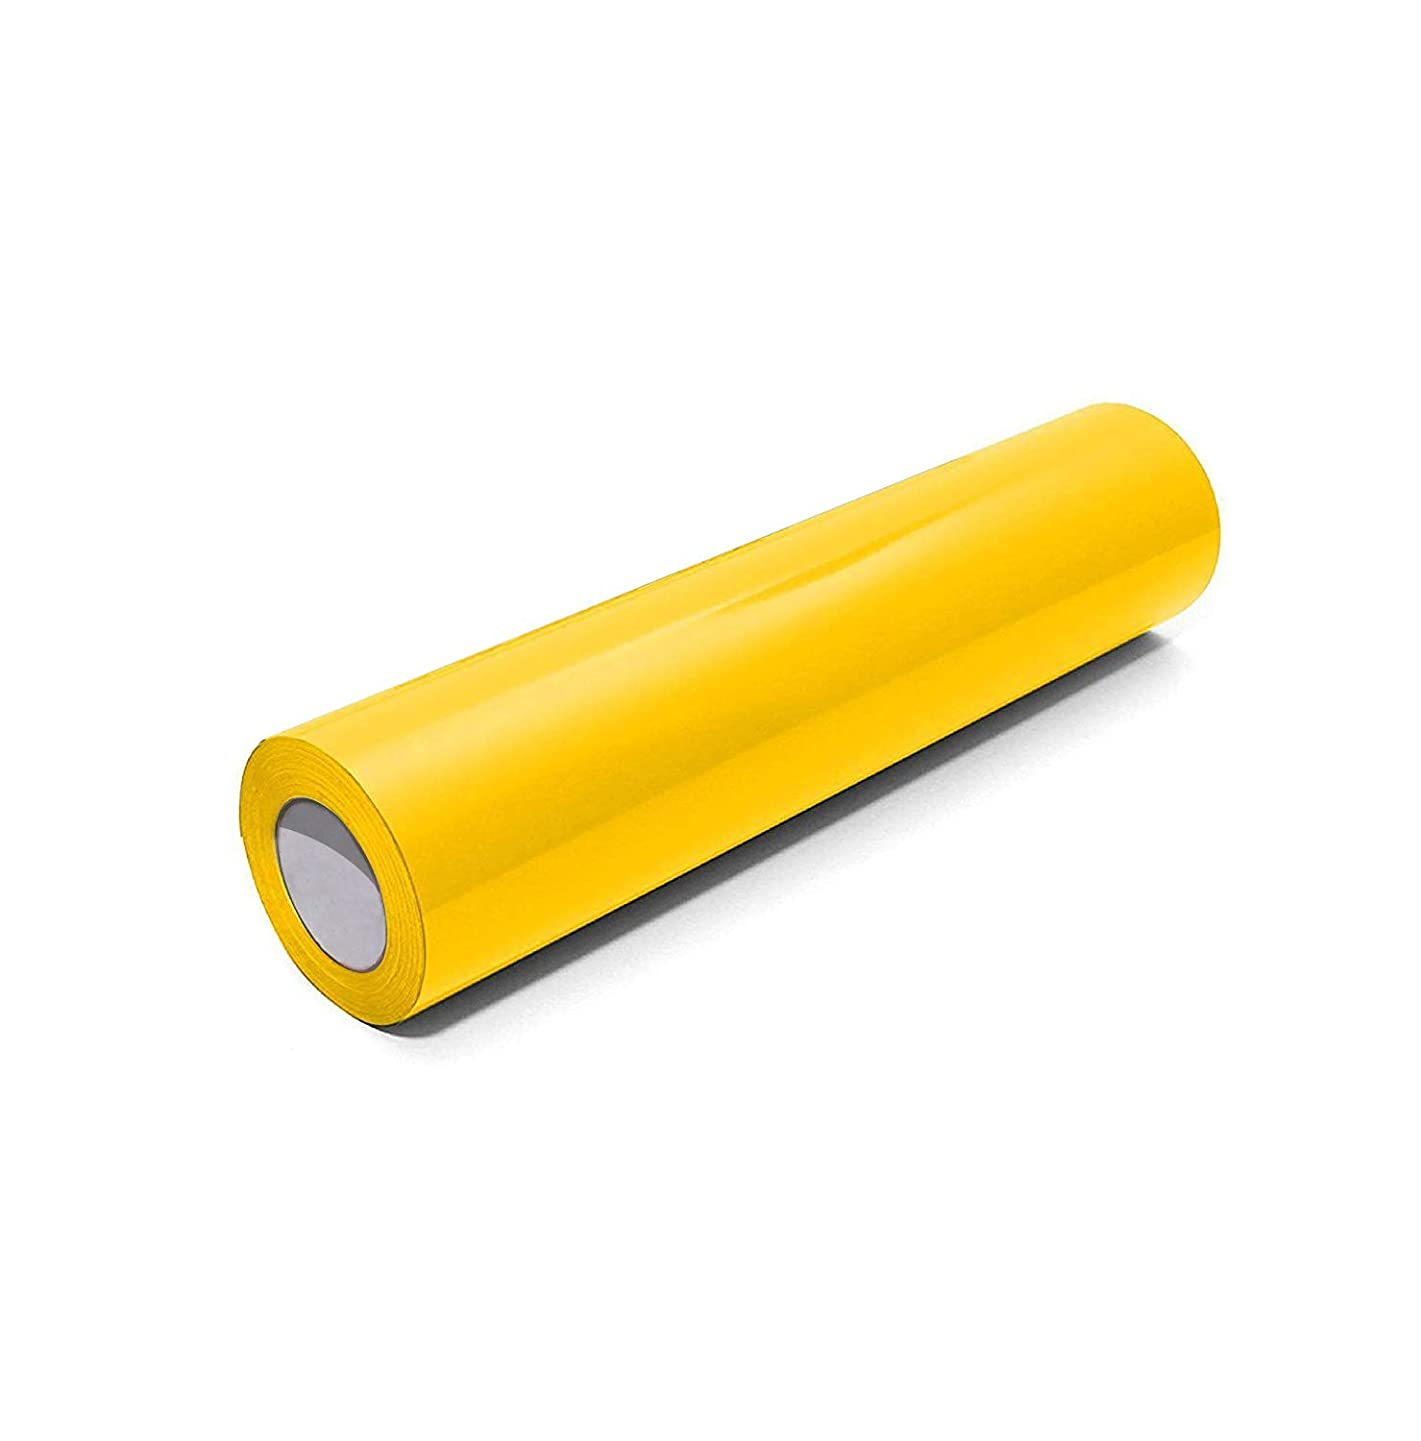 Craft Adhesive Vinyl Color 24in x 30 feet Yellow Color 24in x 30ft Craft Adhesive Vinyl